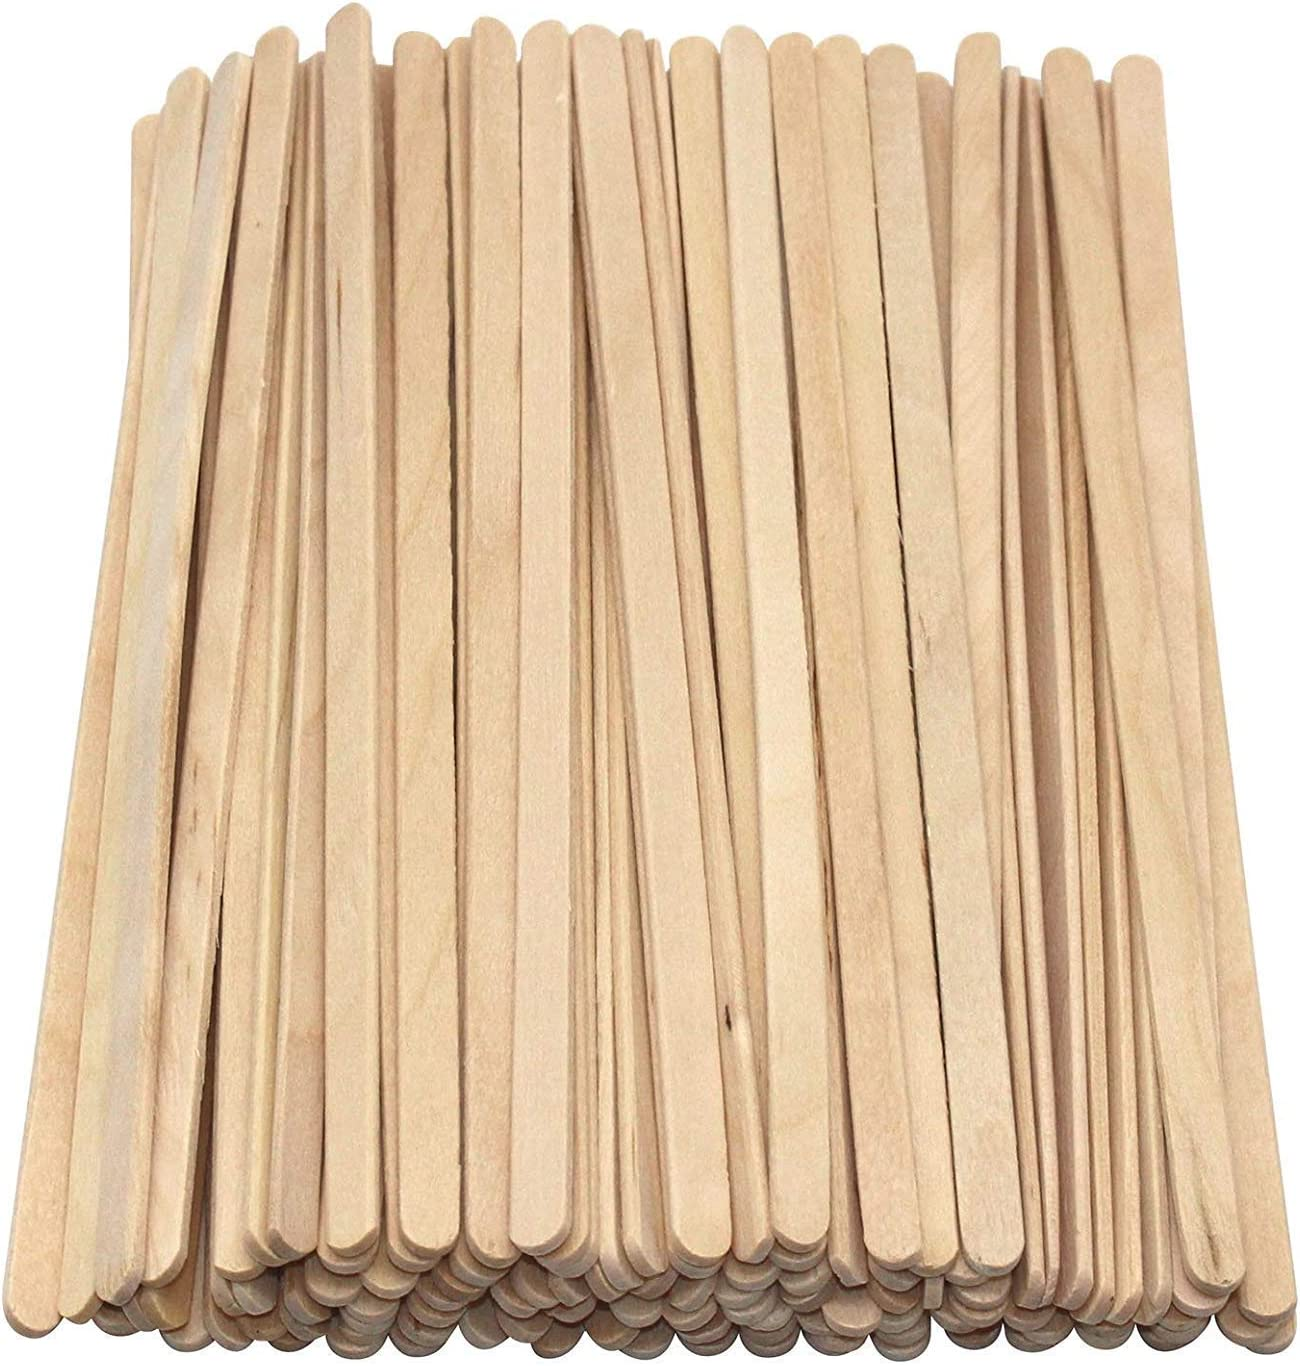 Wooden Round Head Hot Drinks Tea Coffee Hot Chocolate Stirrers For Party Eco-Friendly 100/% Natural Biodegradable Compostable Recyclable We Can Source It Ltd Home-7.5inch//19cm Cafe 8000 Pack